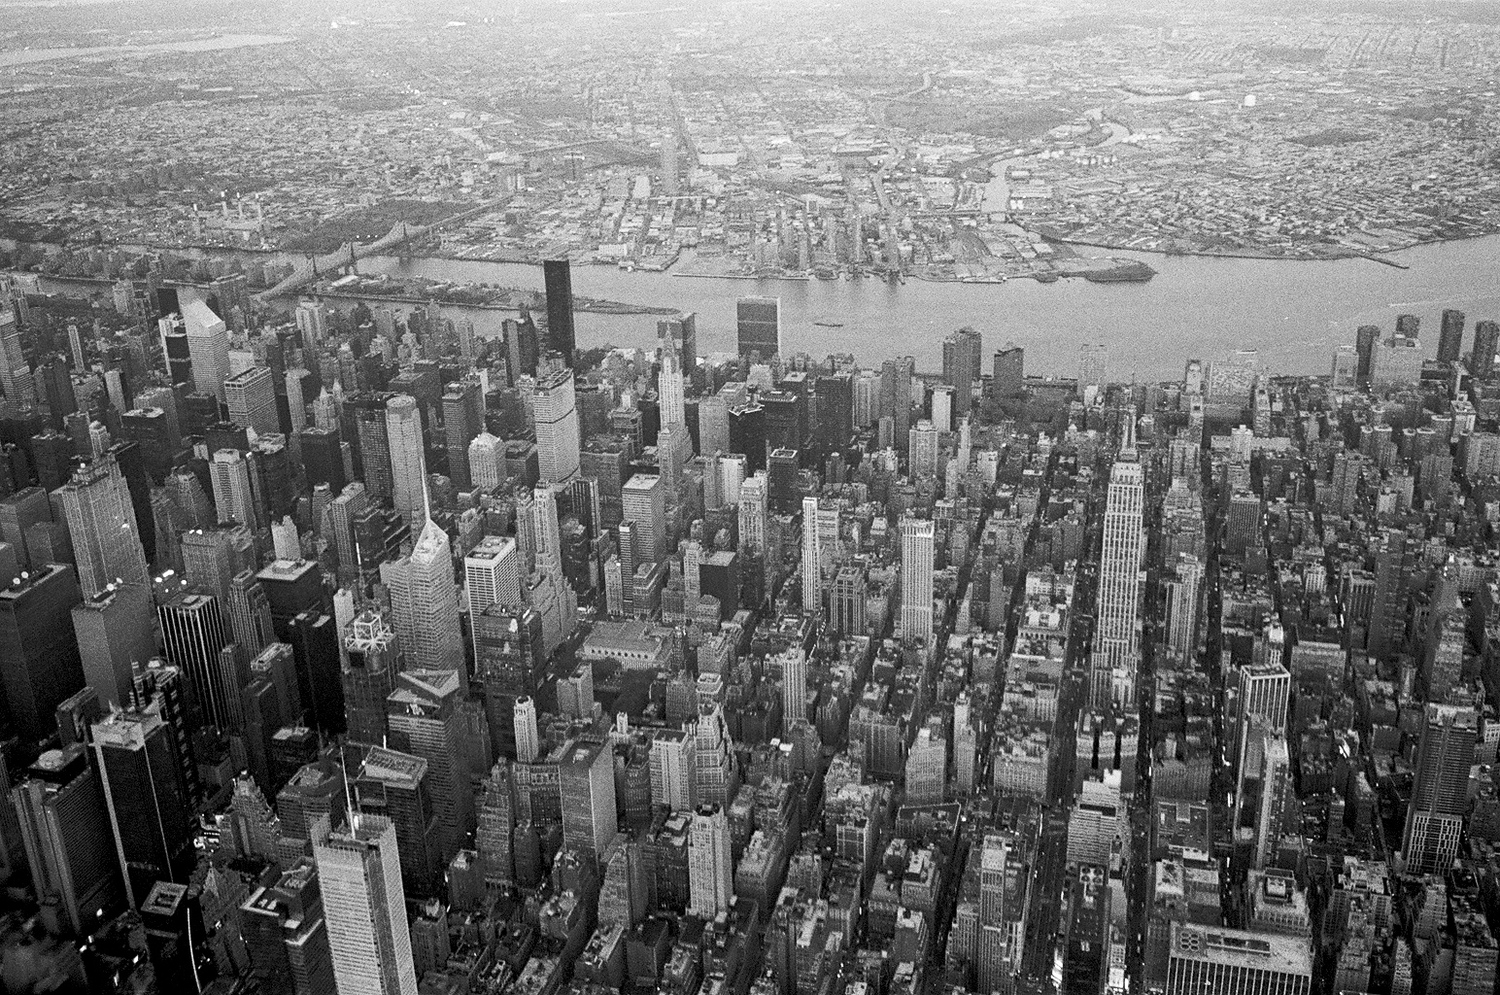 Manhattan | Overflying Manhattan, preparing to land at LaGuardia airport.